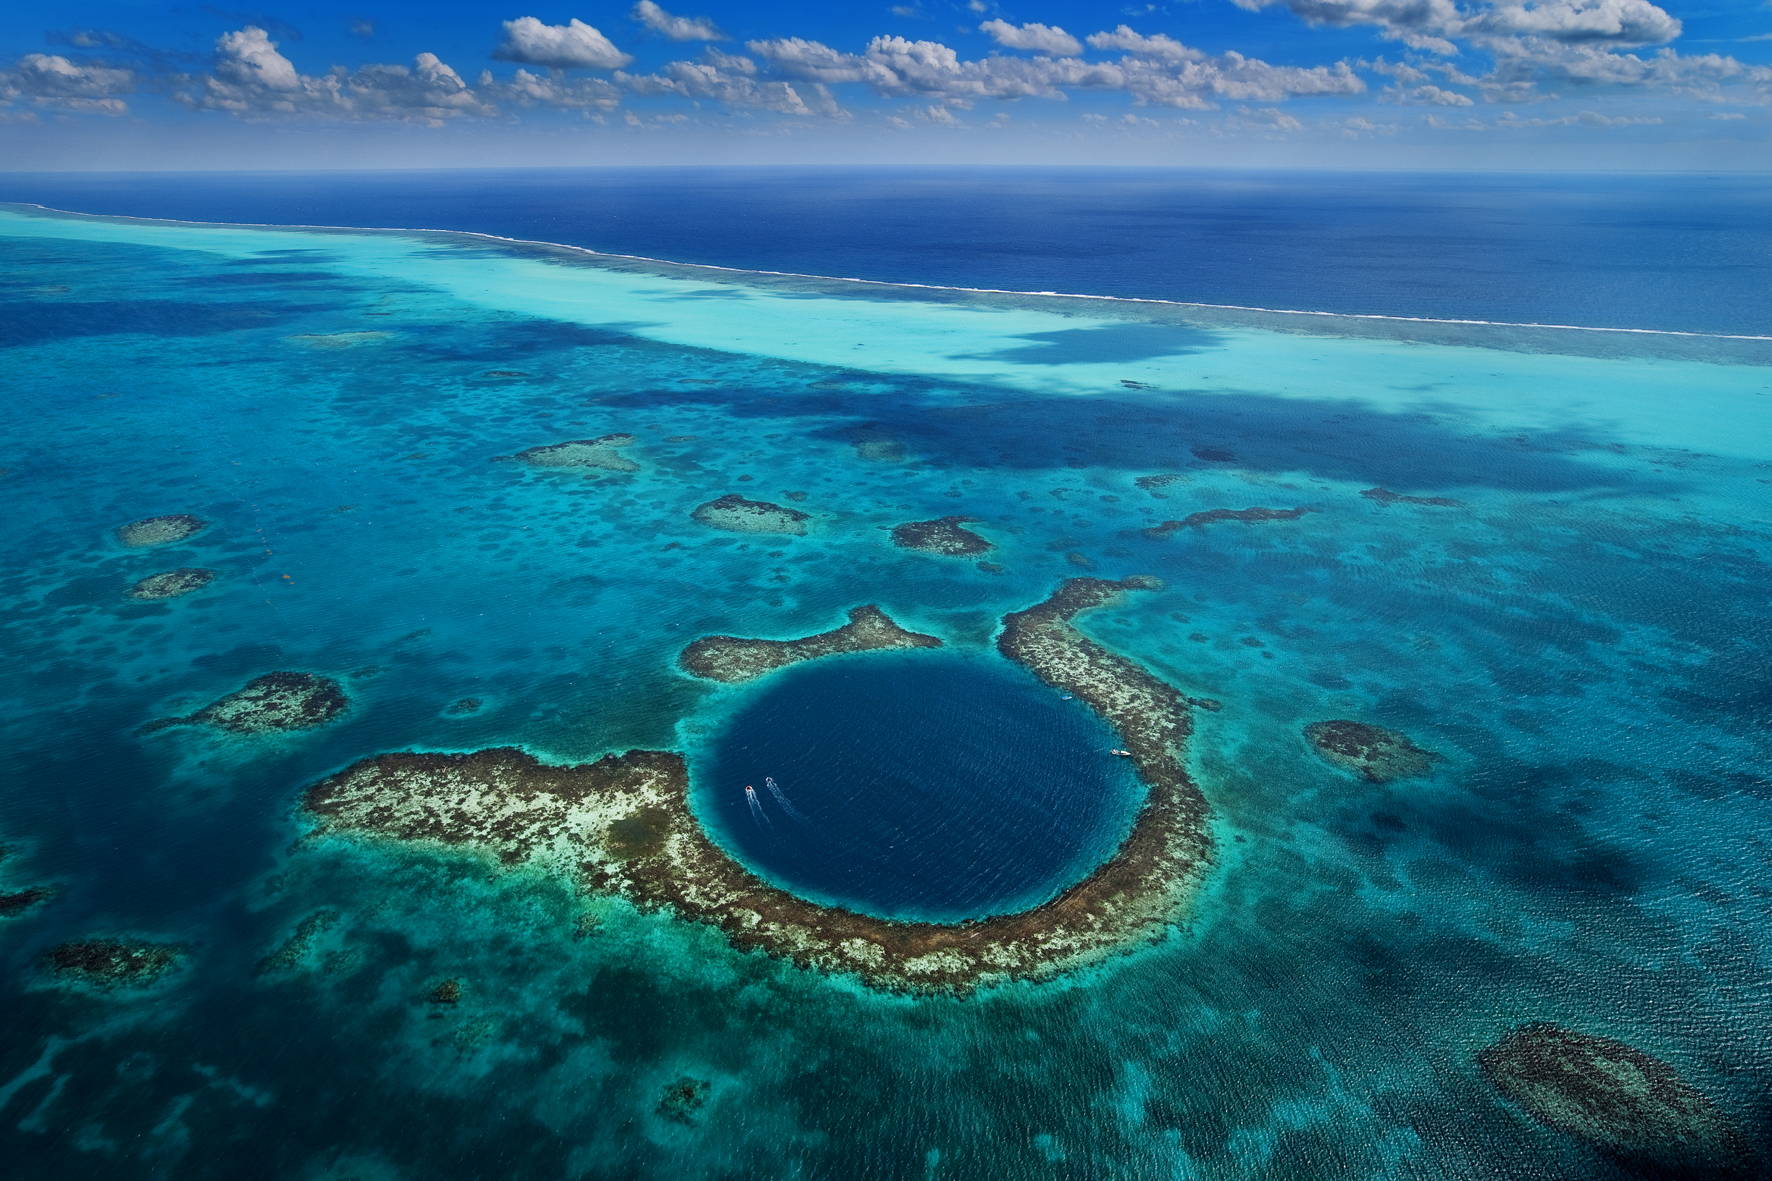 Great Blue Hole National Park, Belize http://www.visithopkinsvillagebelize.com/the-great-blue-hole.html